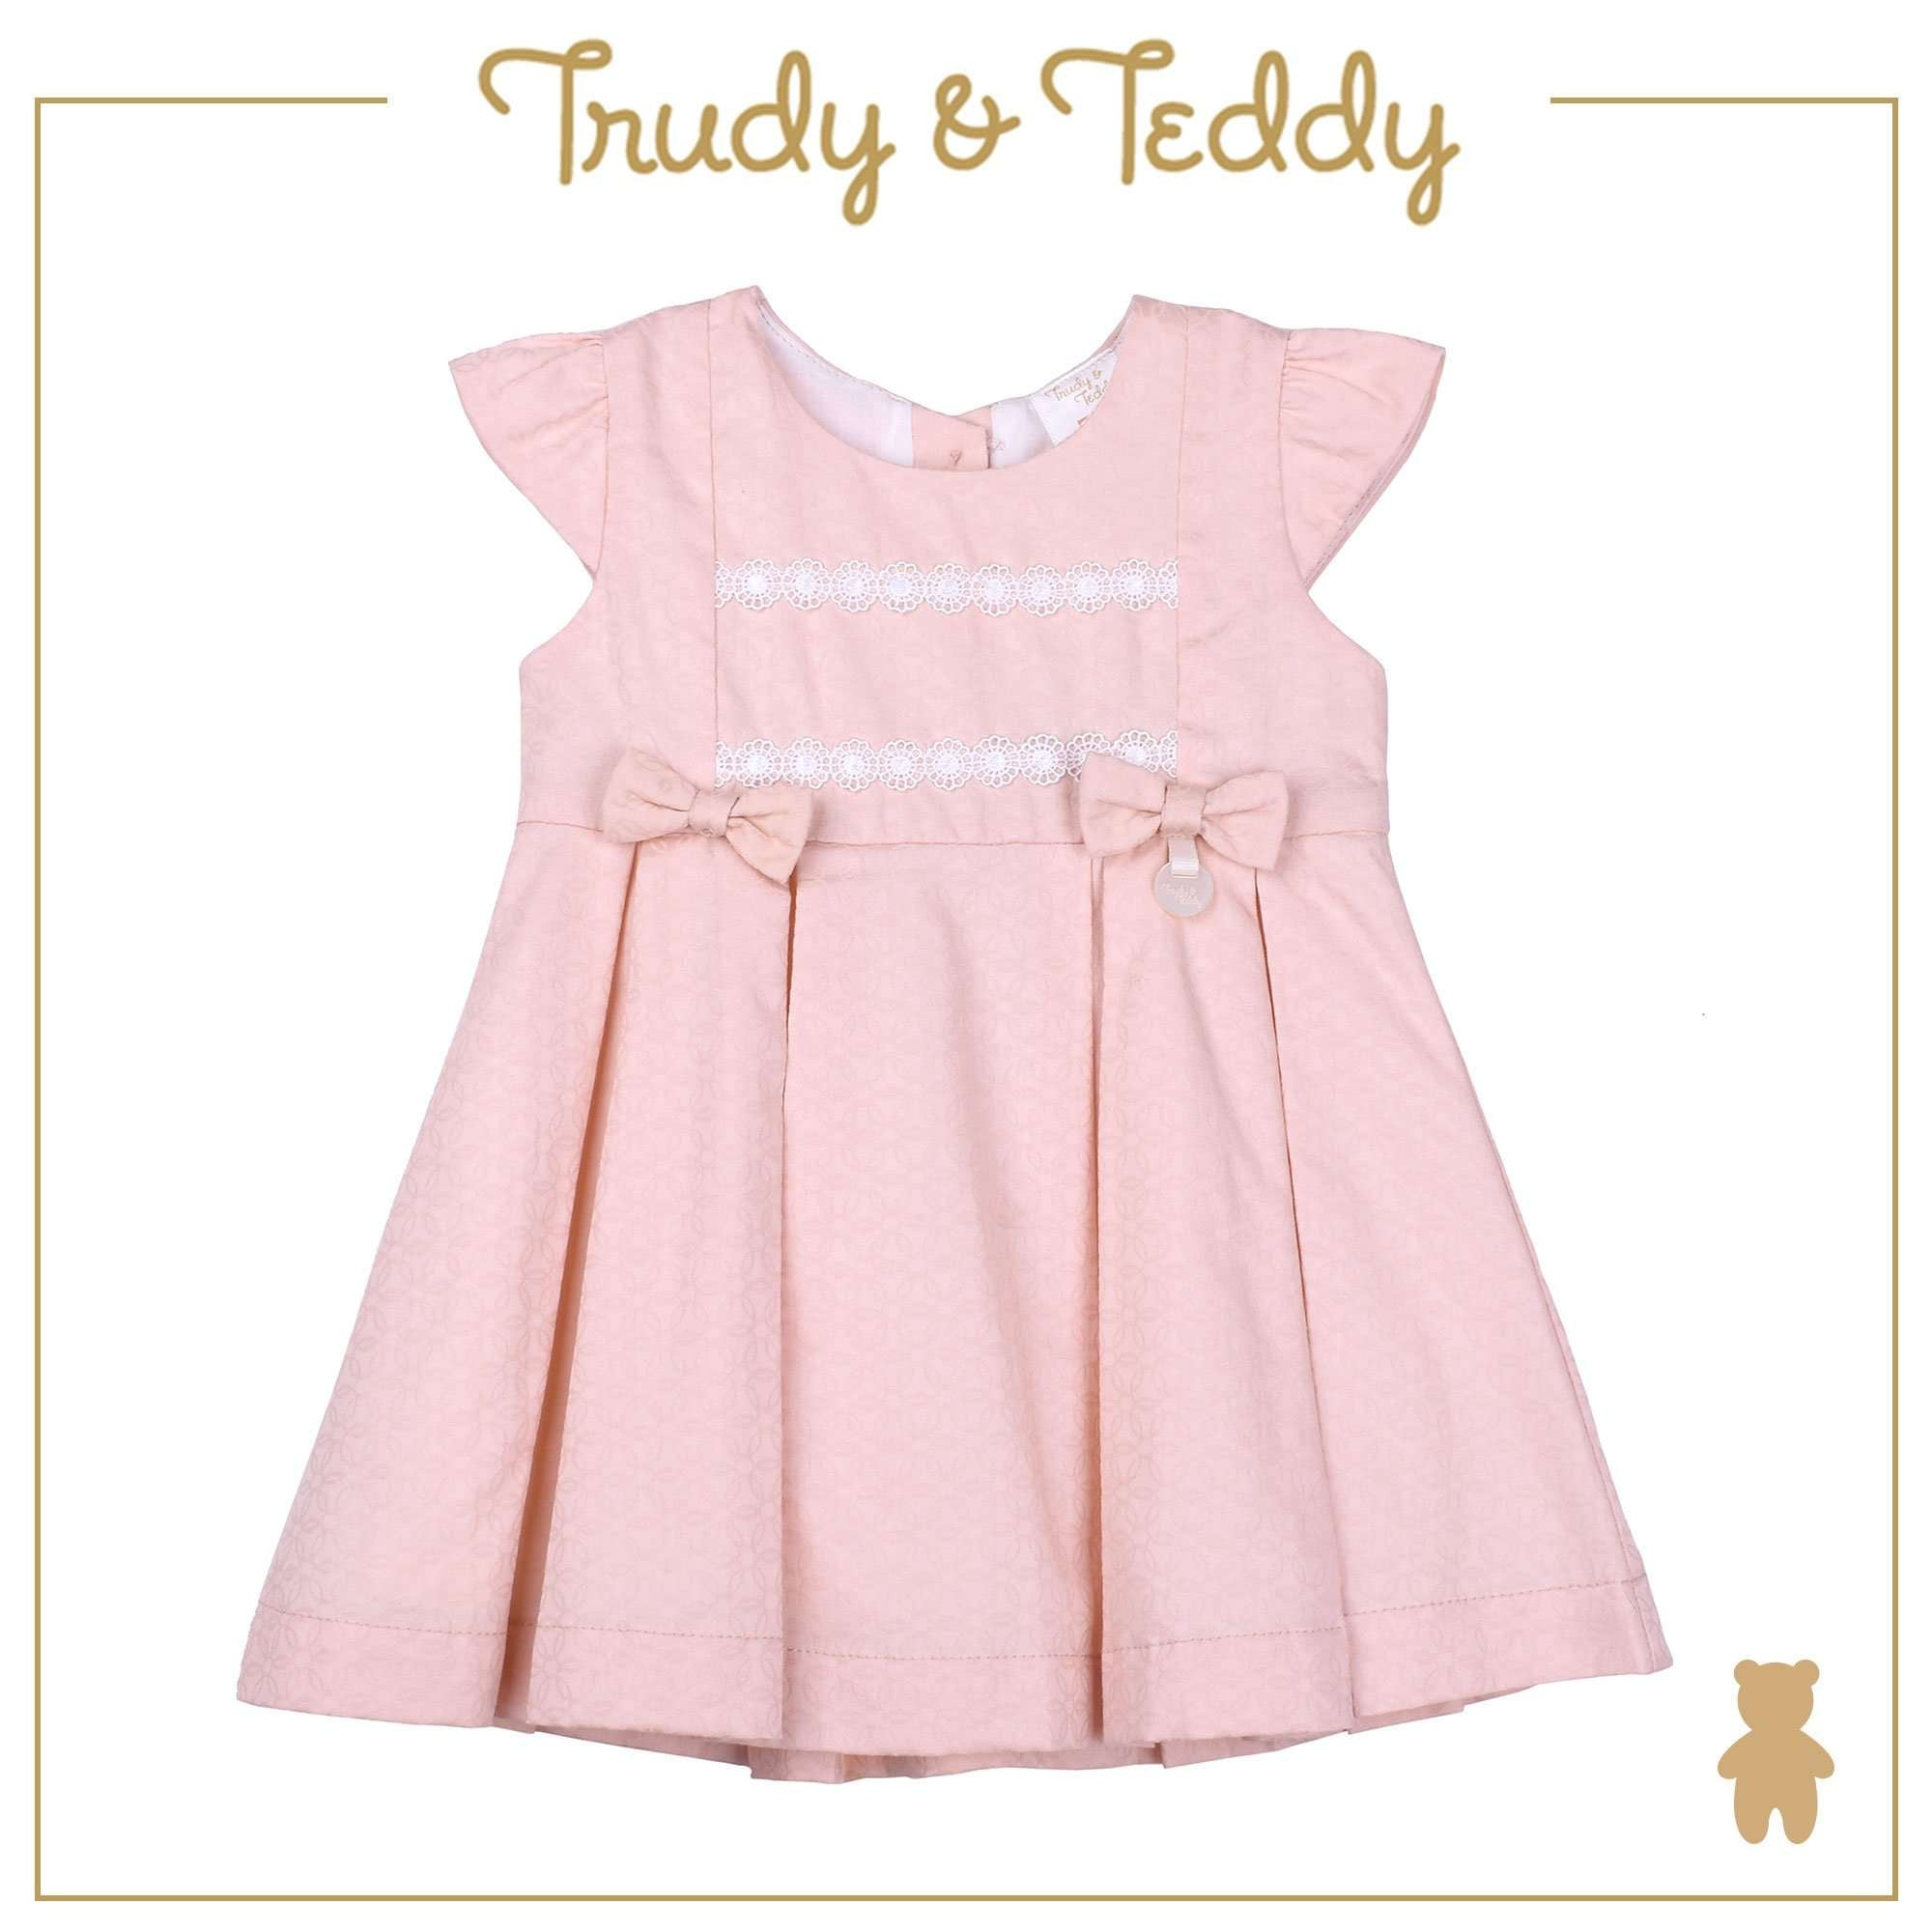 Trudy & Teddy Baby Girl Short Sleeve Dress - Light Orange T924002-3134-E1 : Buy Trudy & Teddy online at CMG.MY